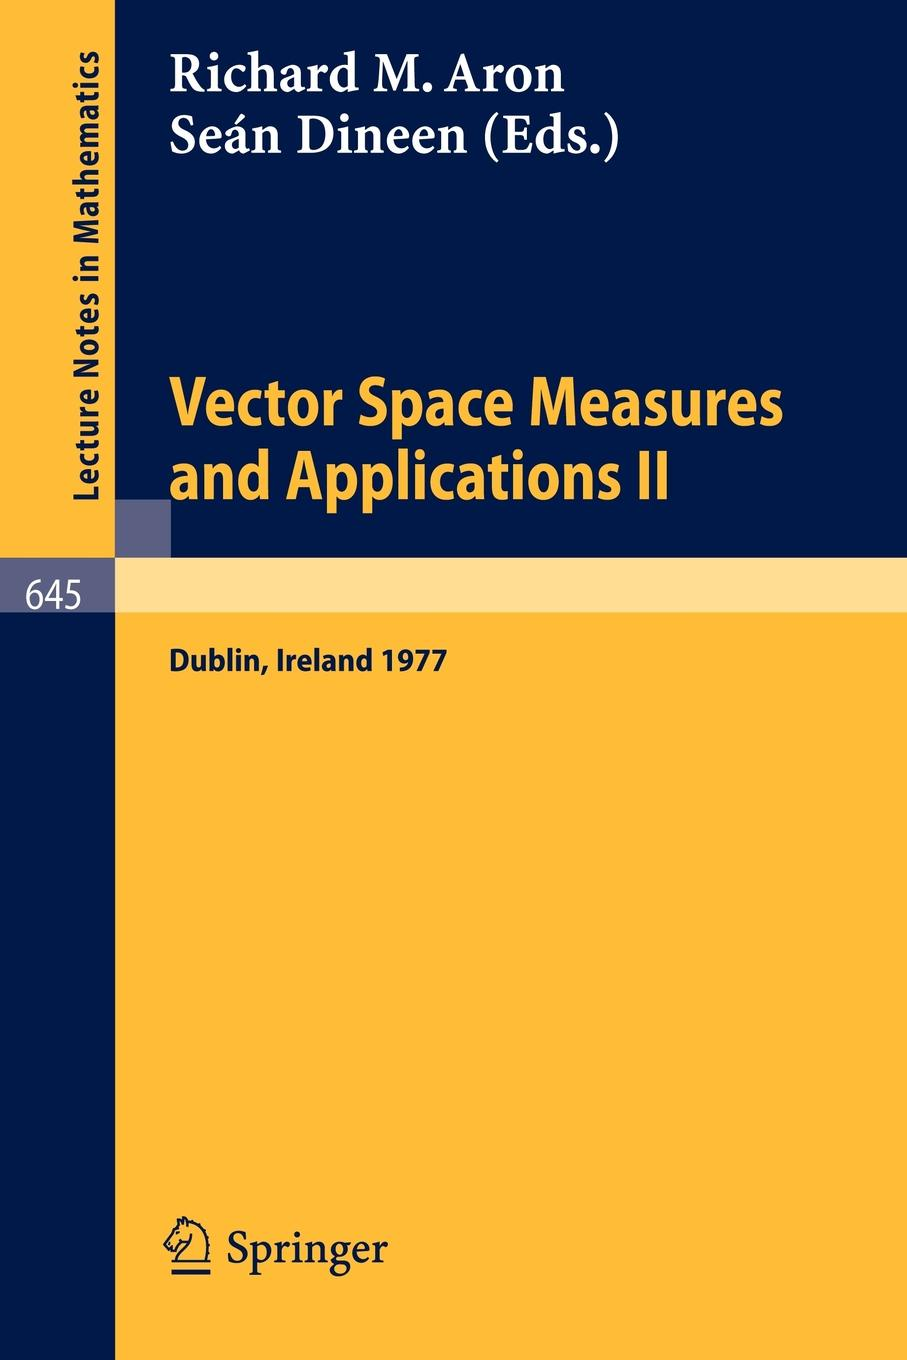 Vector Space Measures and Applications II. Proceedings, Dublin 1977